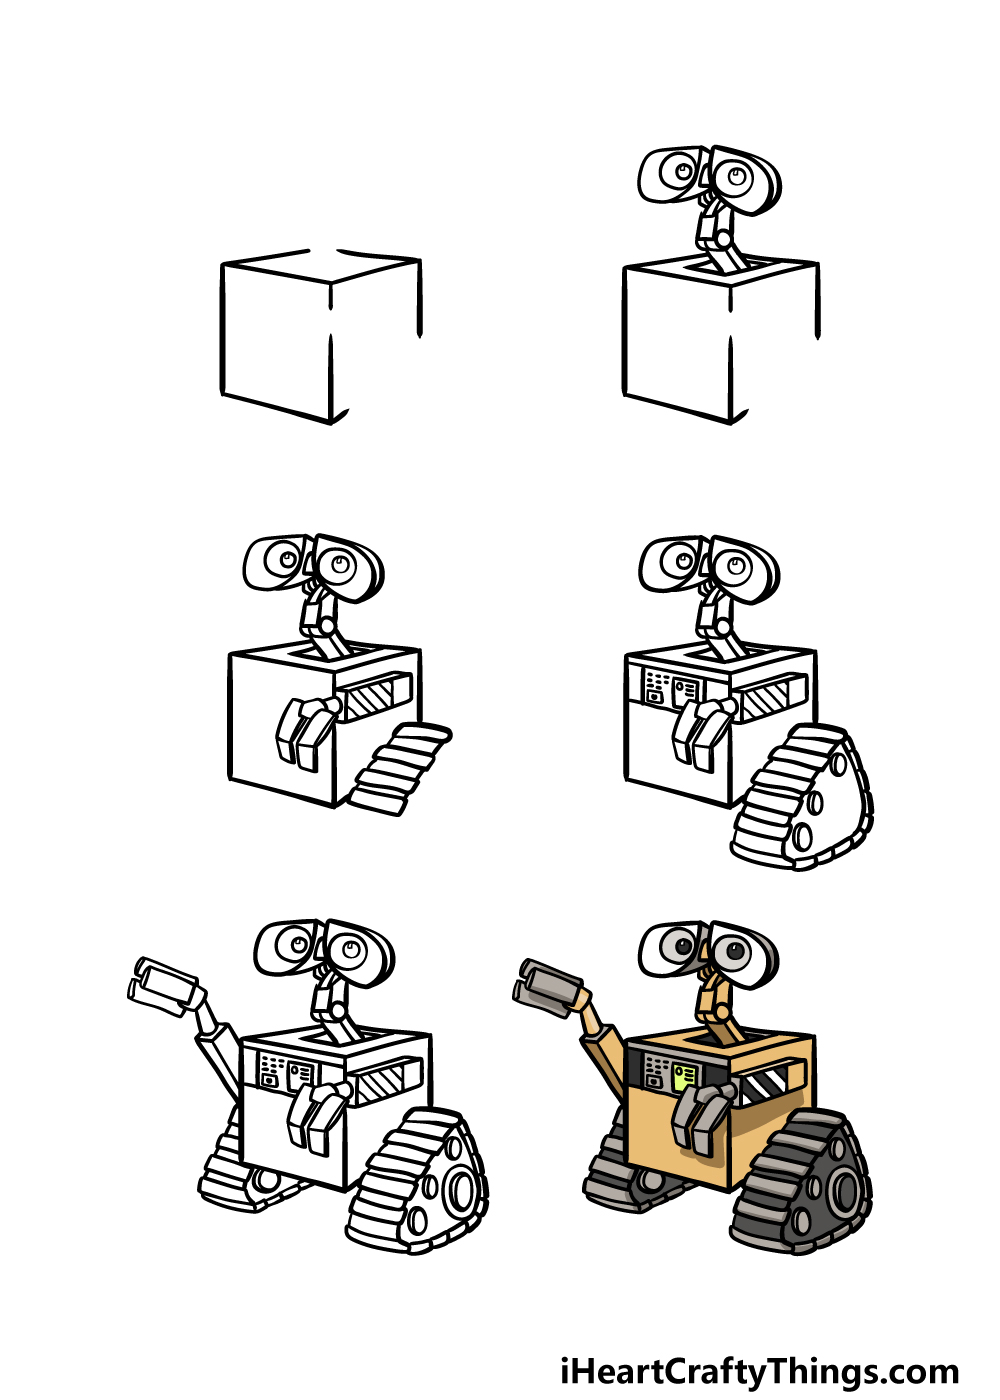 how to draw Wall-E in 6 steps